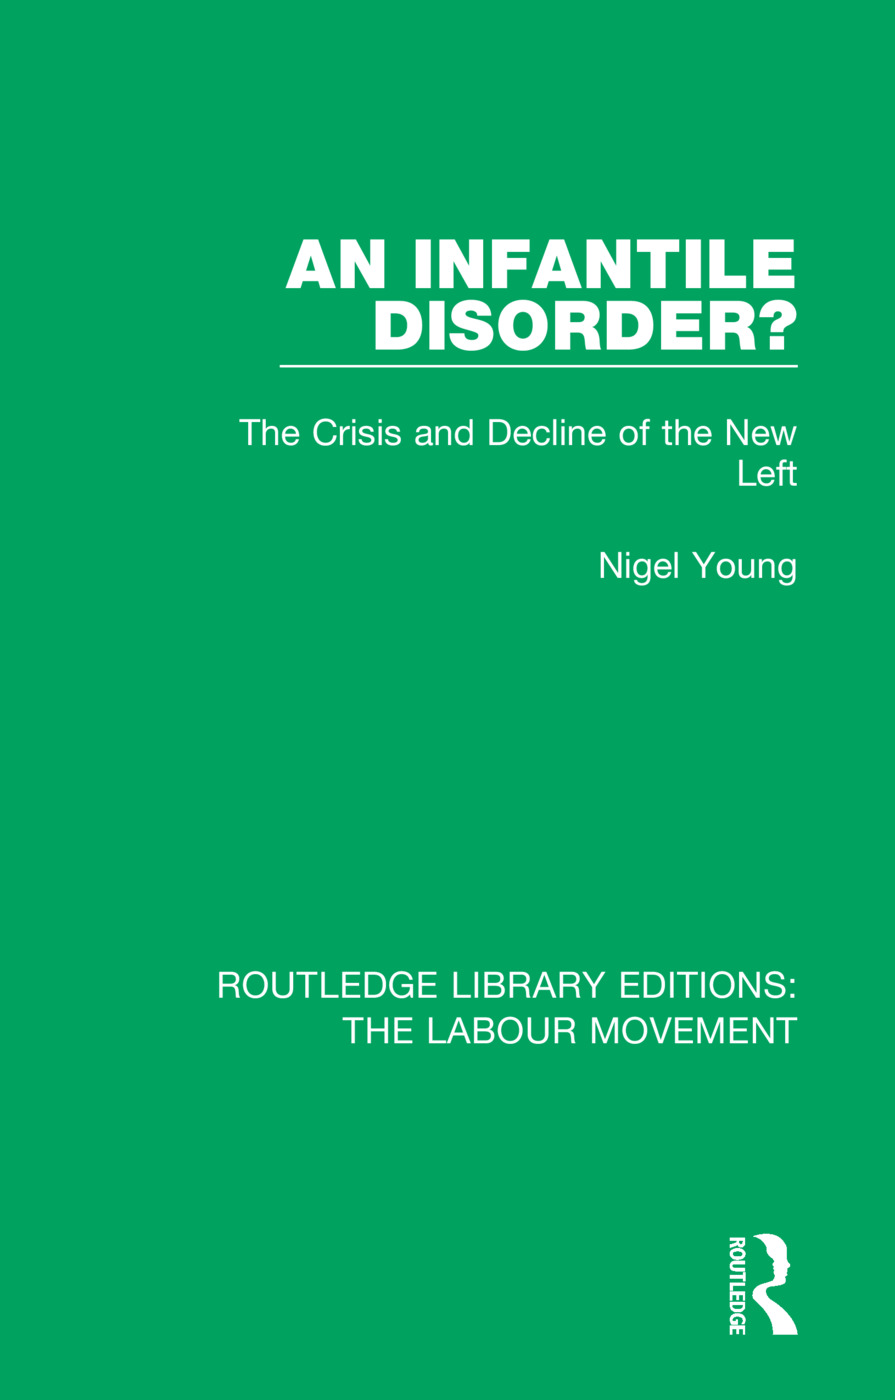 An Infantile Disorder?: The Crisis and Decline of the New Left book cover